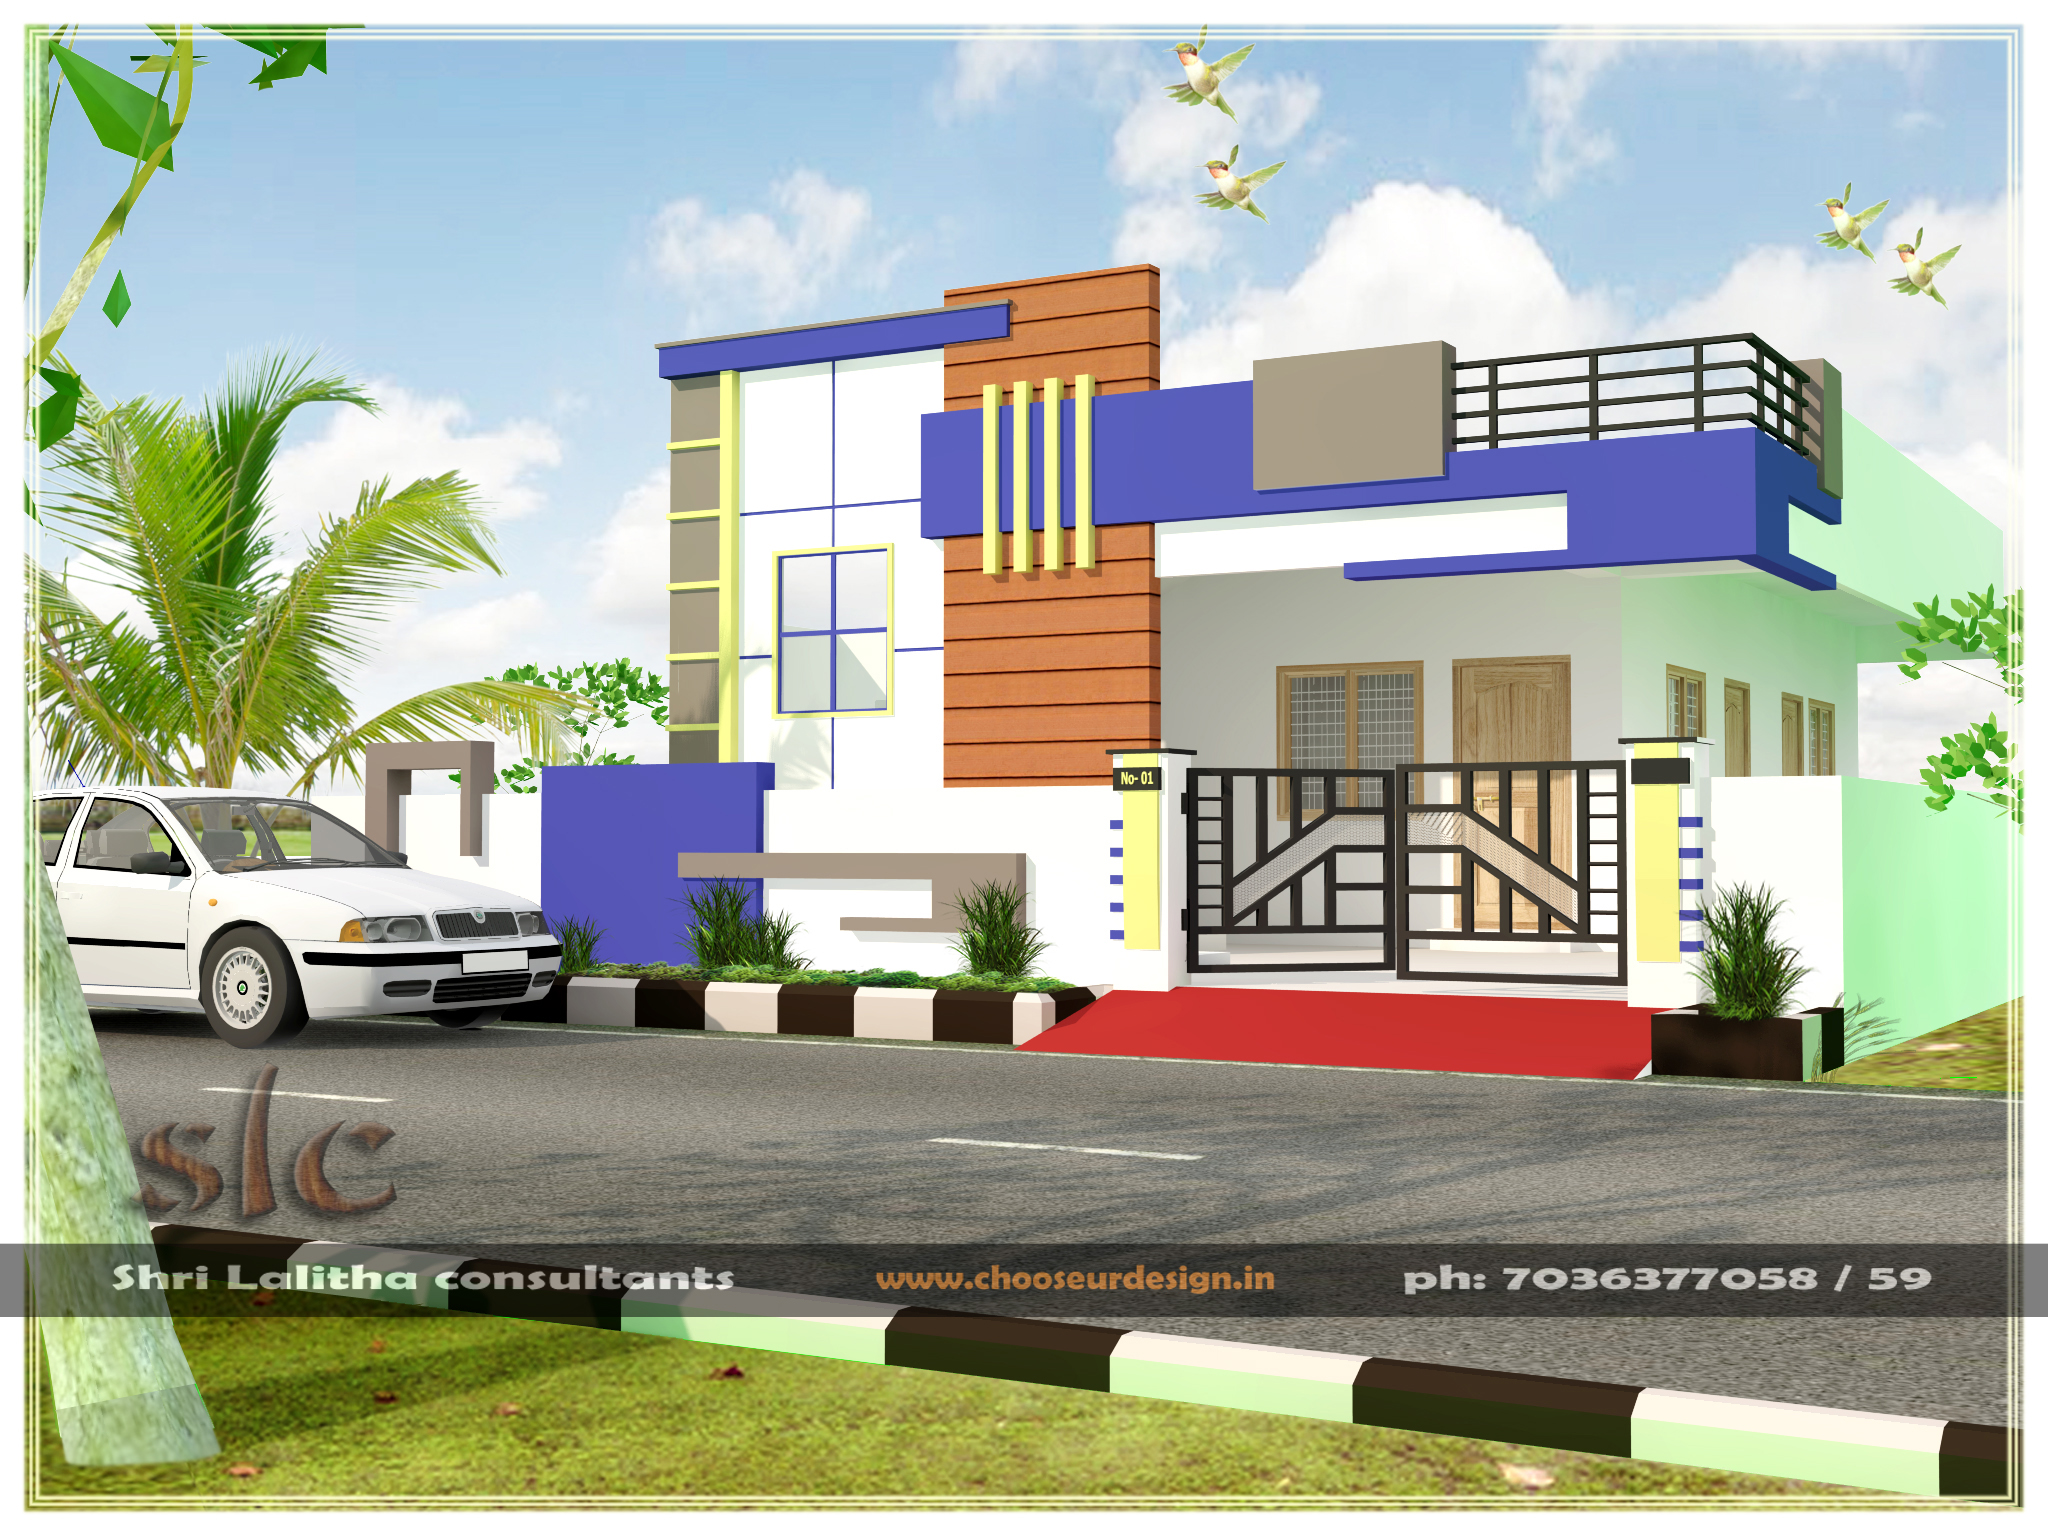 South indian house elevation india house design anandus for Single floor house elevation designs